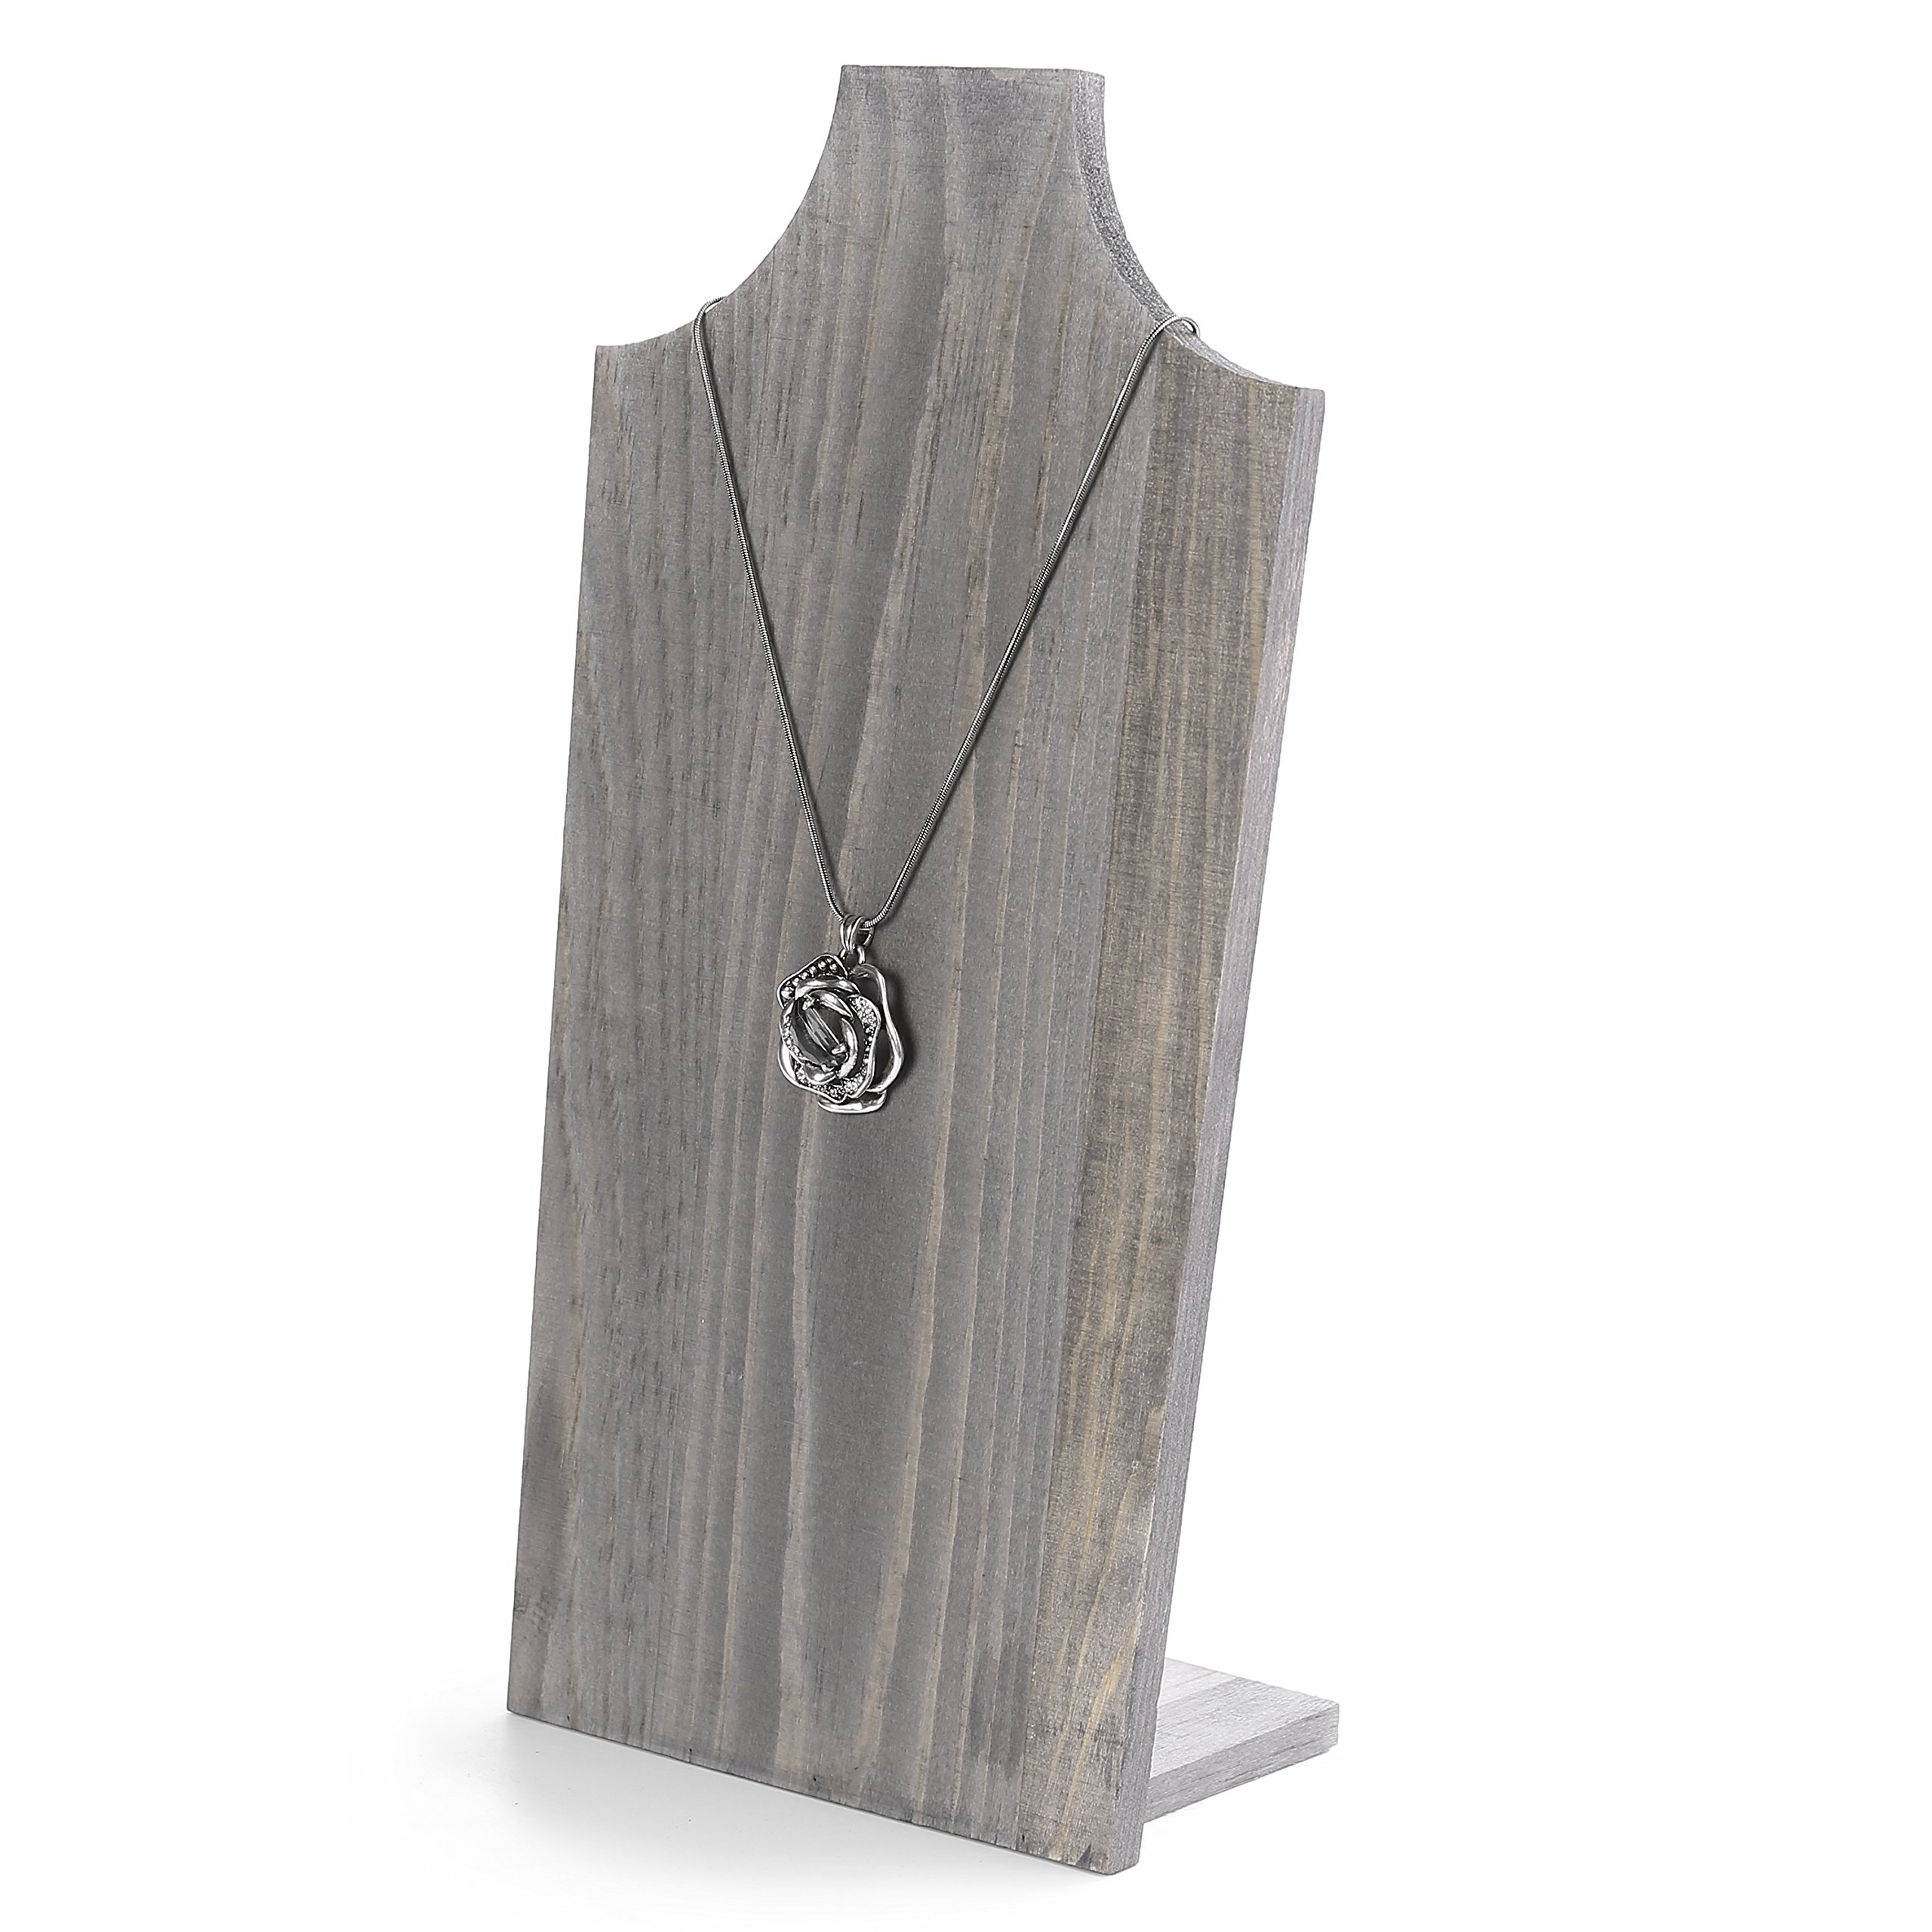 MyGift Rustic Barnwood Gray Free-Standing Necklace Easel Display Stand Holder